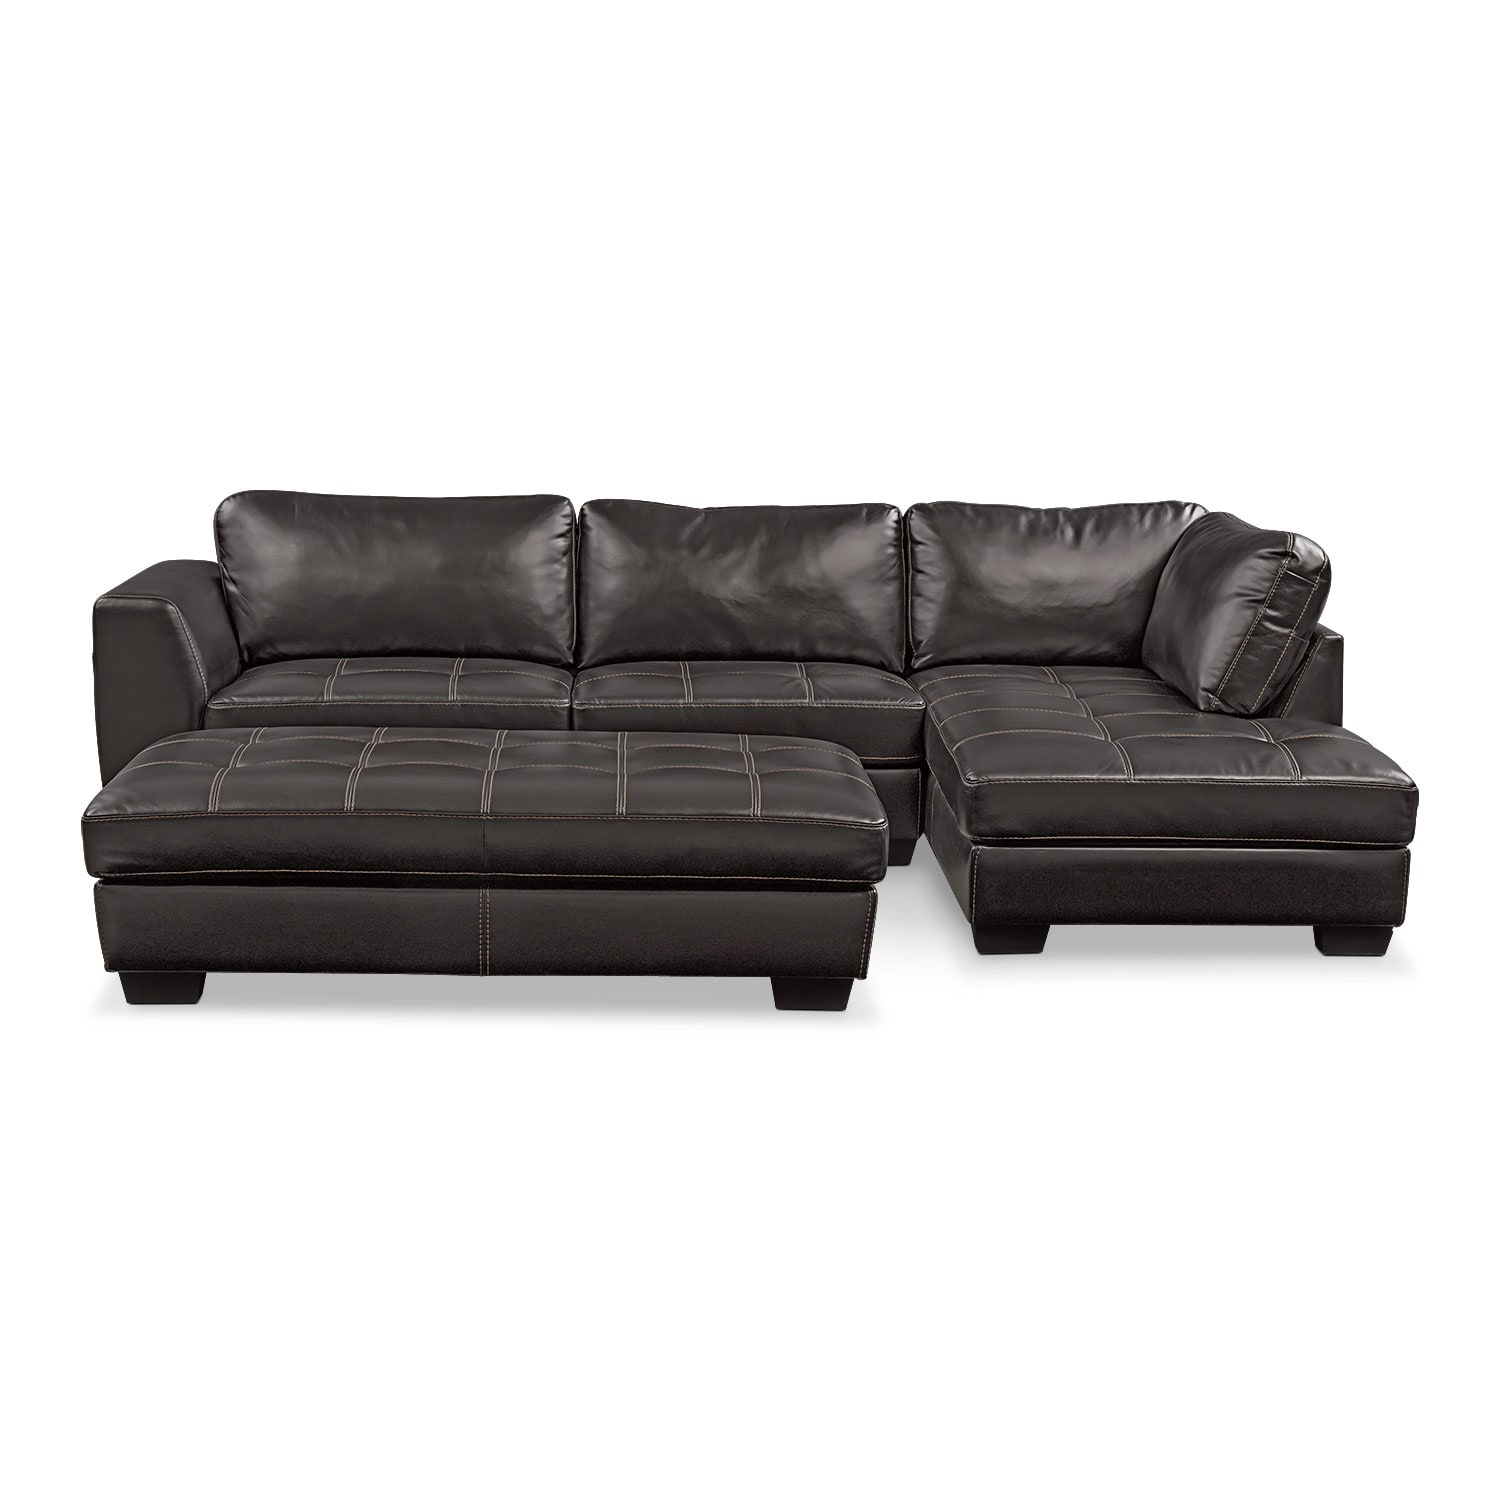 Santana 2 piece sectional with chaise and cocktail ottoman set american signature furniture